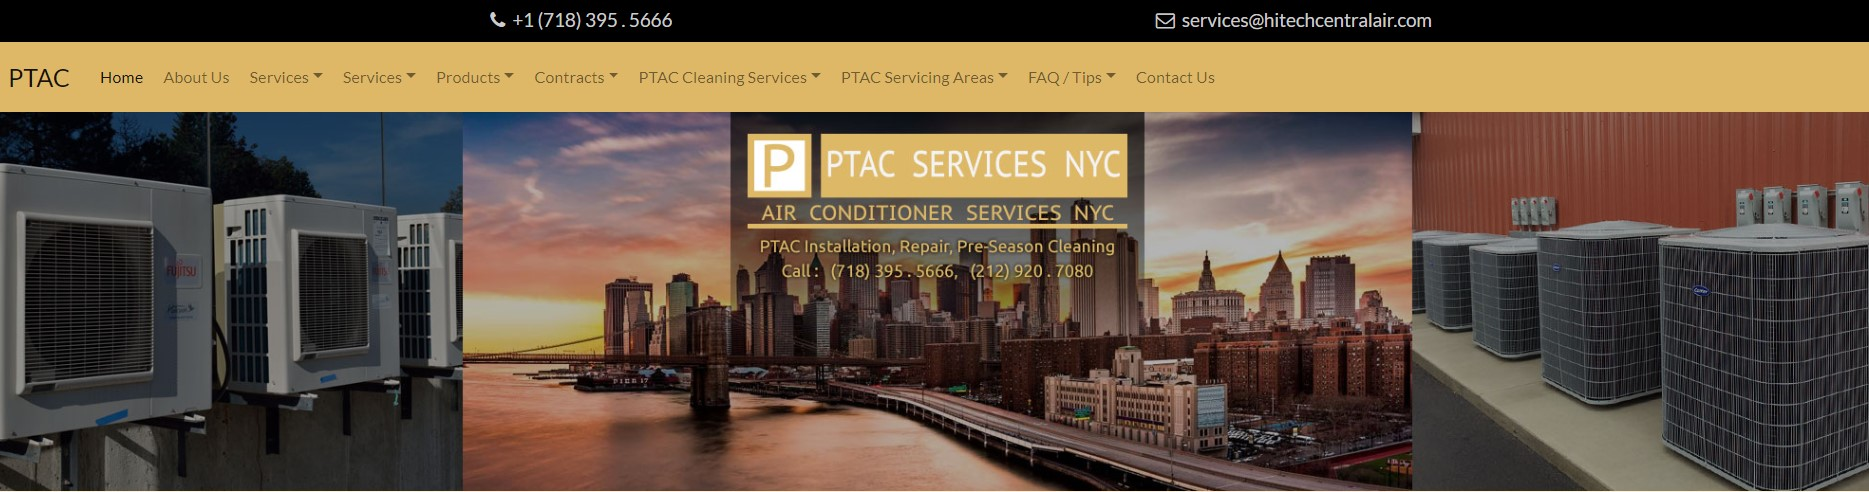 PTAC hvac services in new york